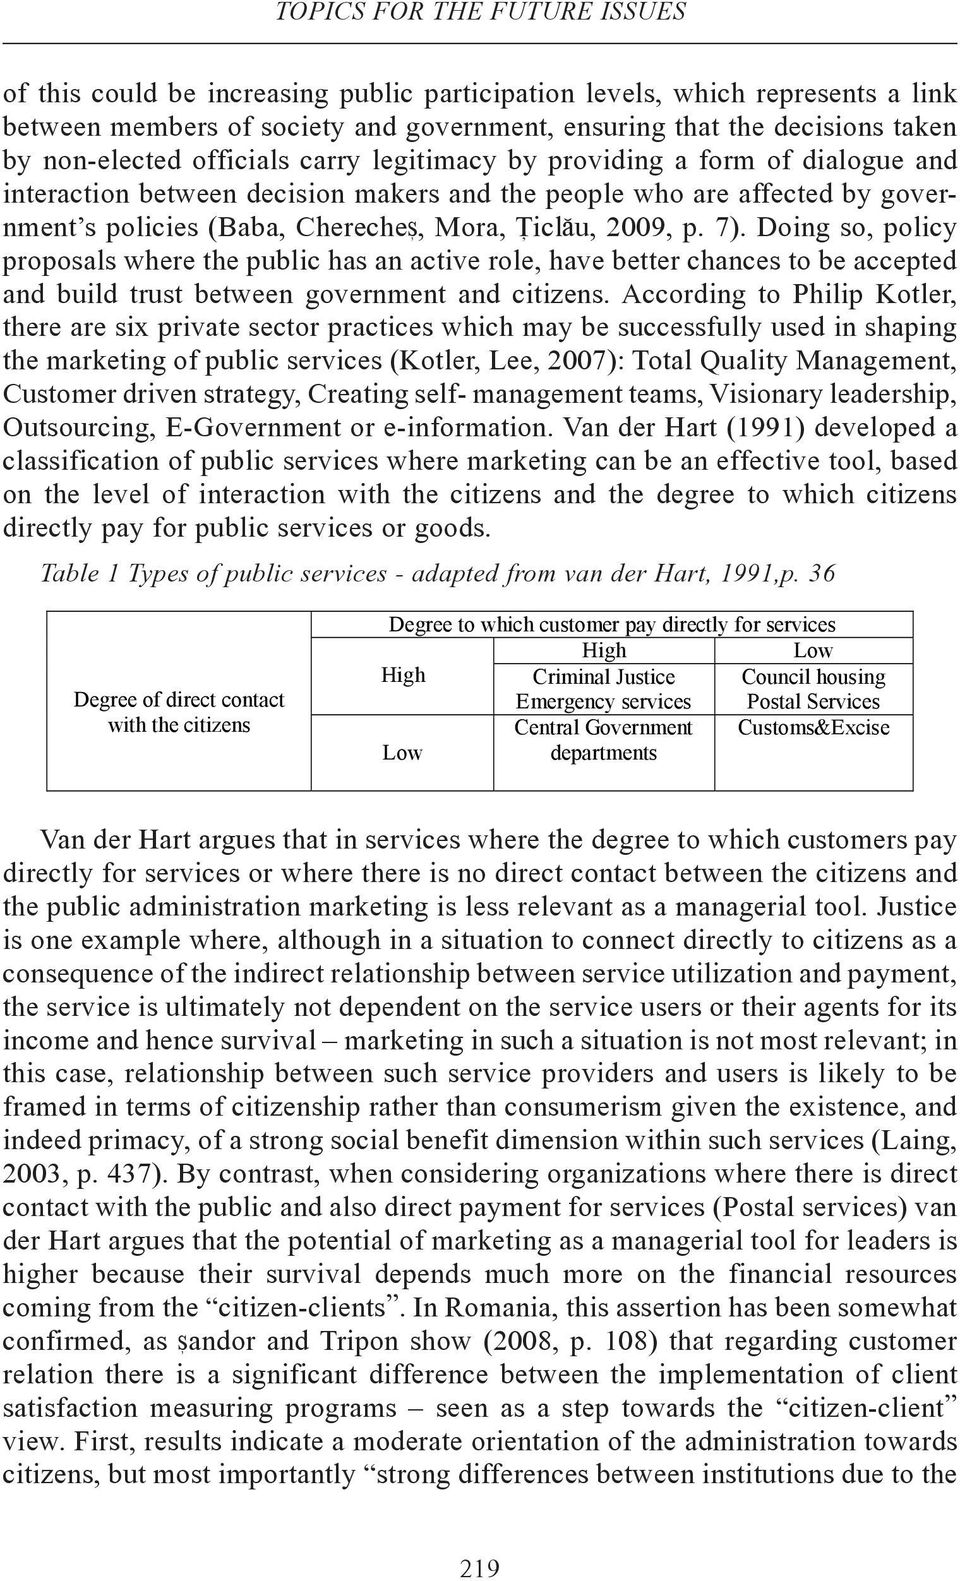 2009, p. 7). Doing so, policy proposals where the public has an active role, have better chances to be accepted and build trust between government and citizens.